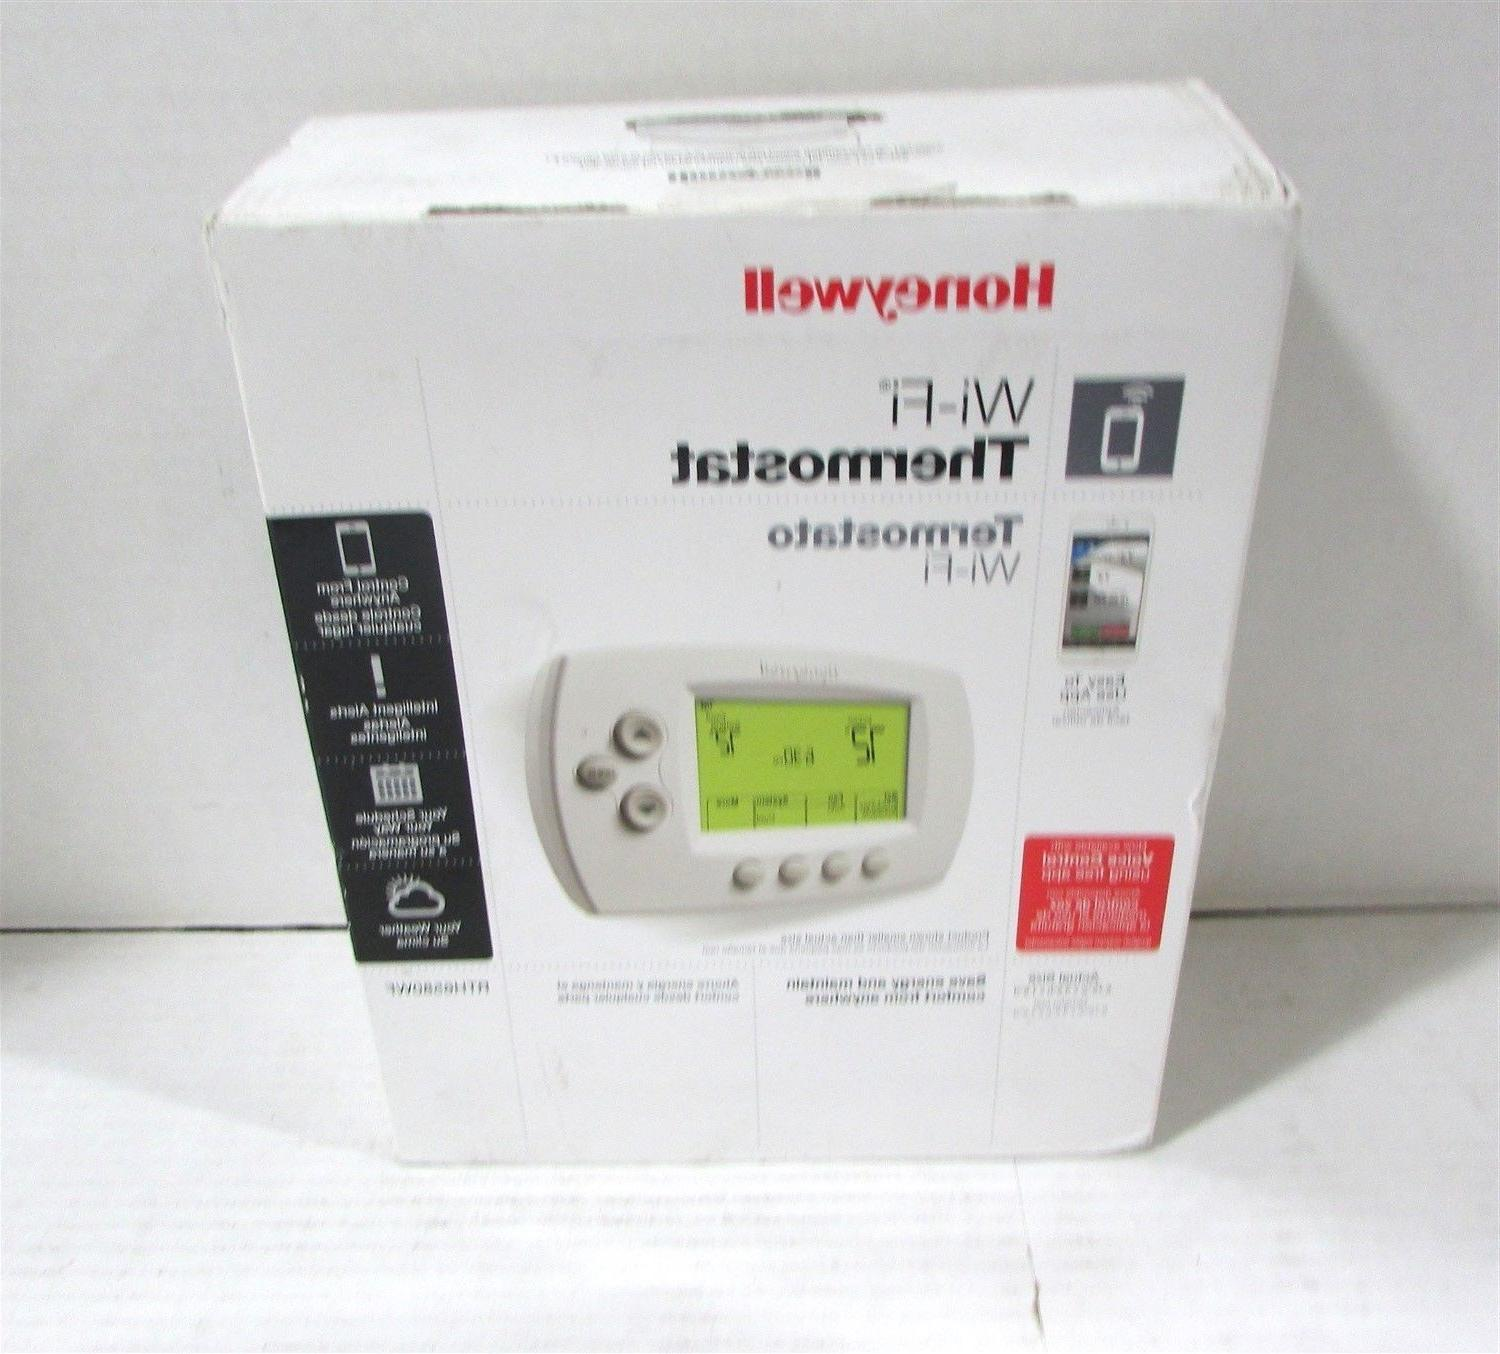 Honeywell Rth6580wf1001  W White 7 Day Programmable Wi